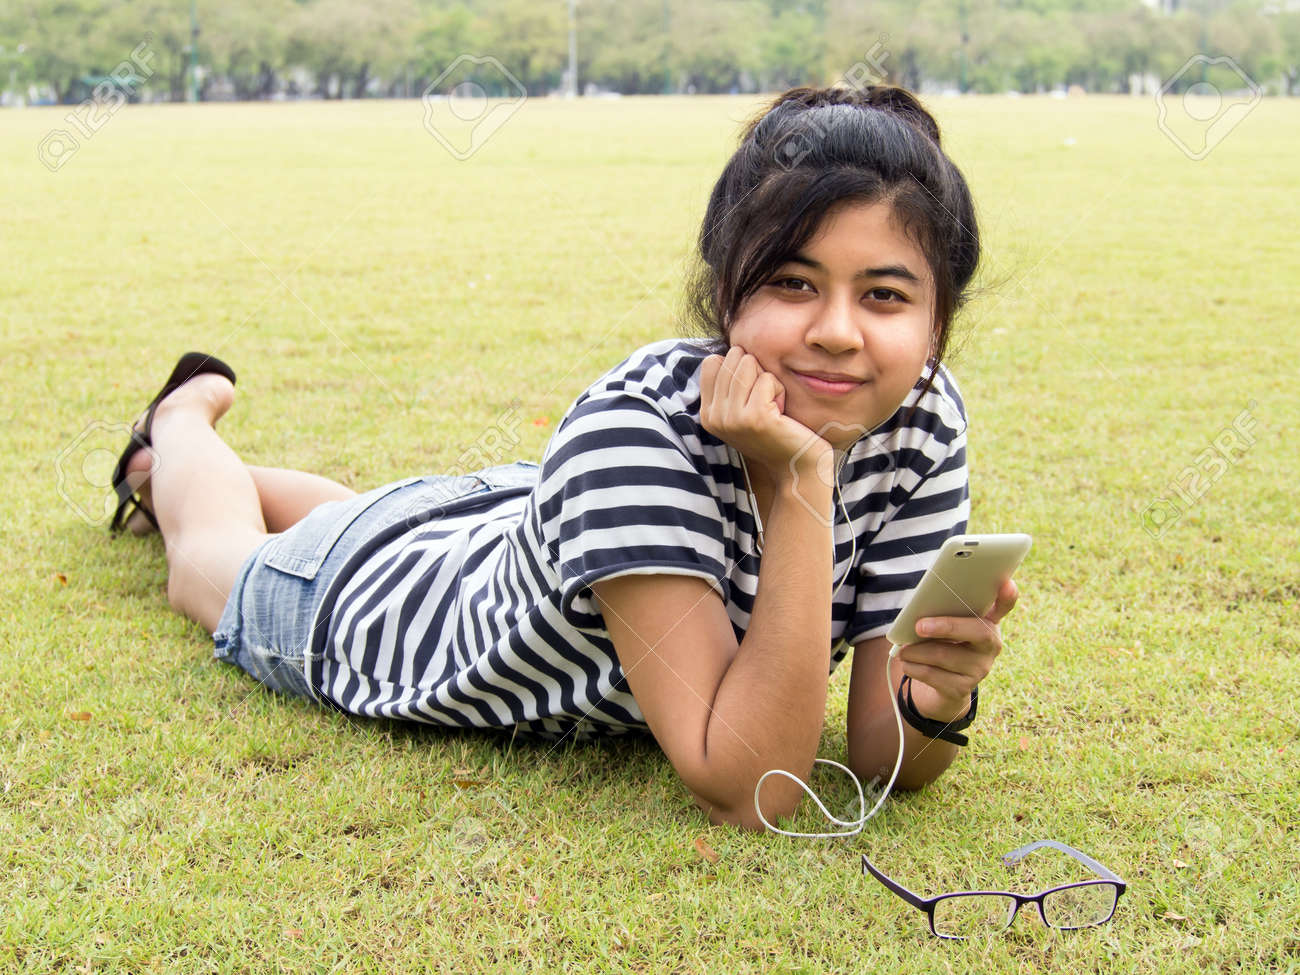 A young girl lie down on grass with headphones outdoors. Listening music Stock Photo - 13053246